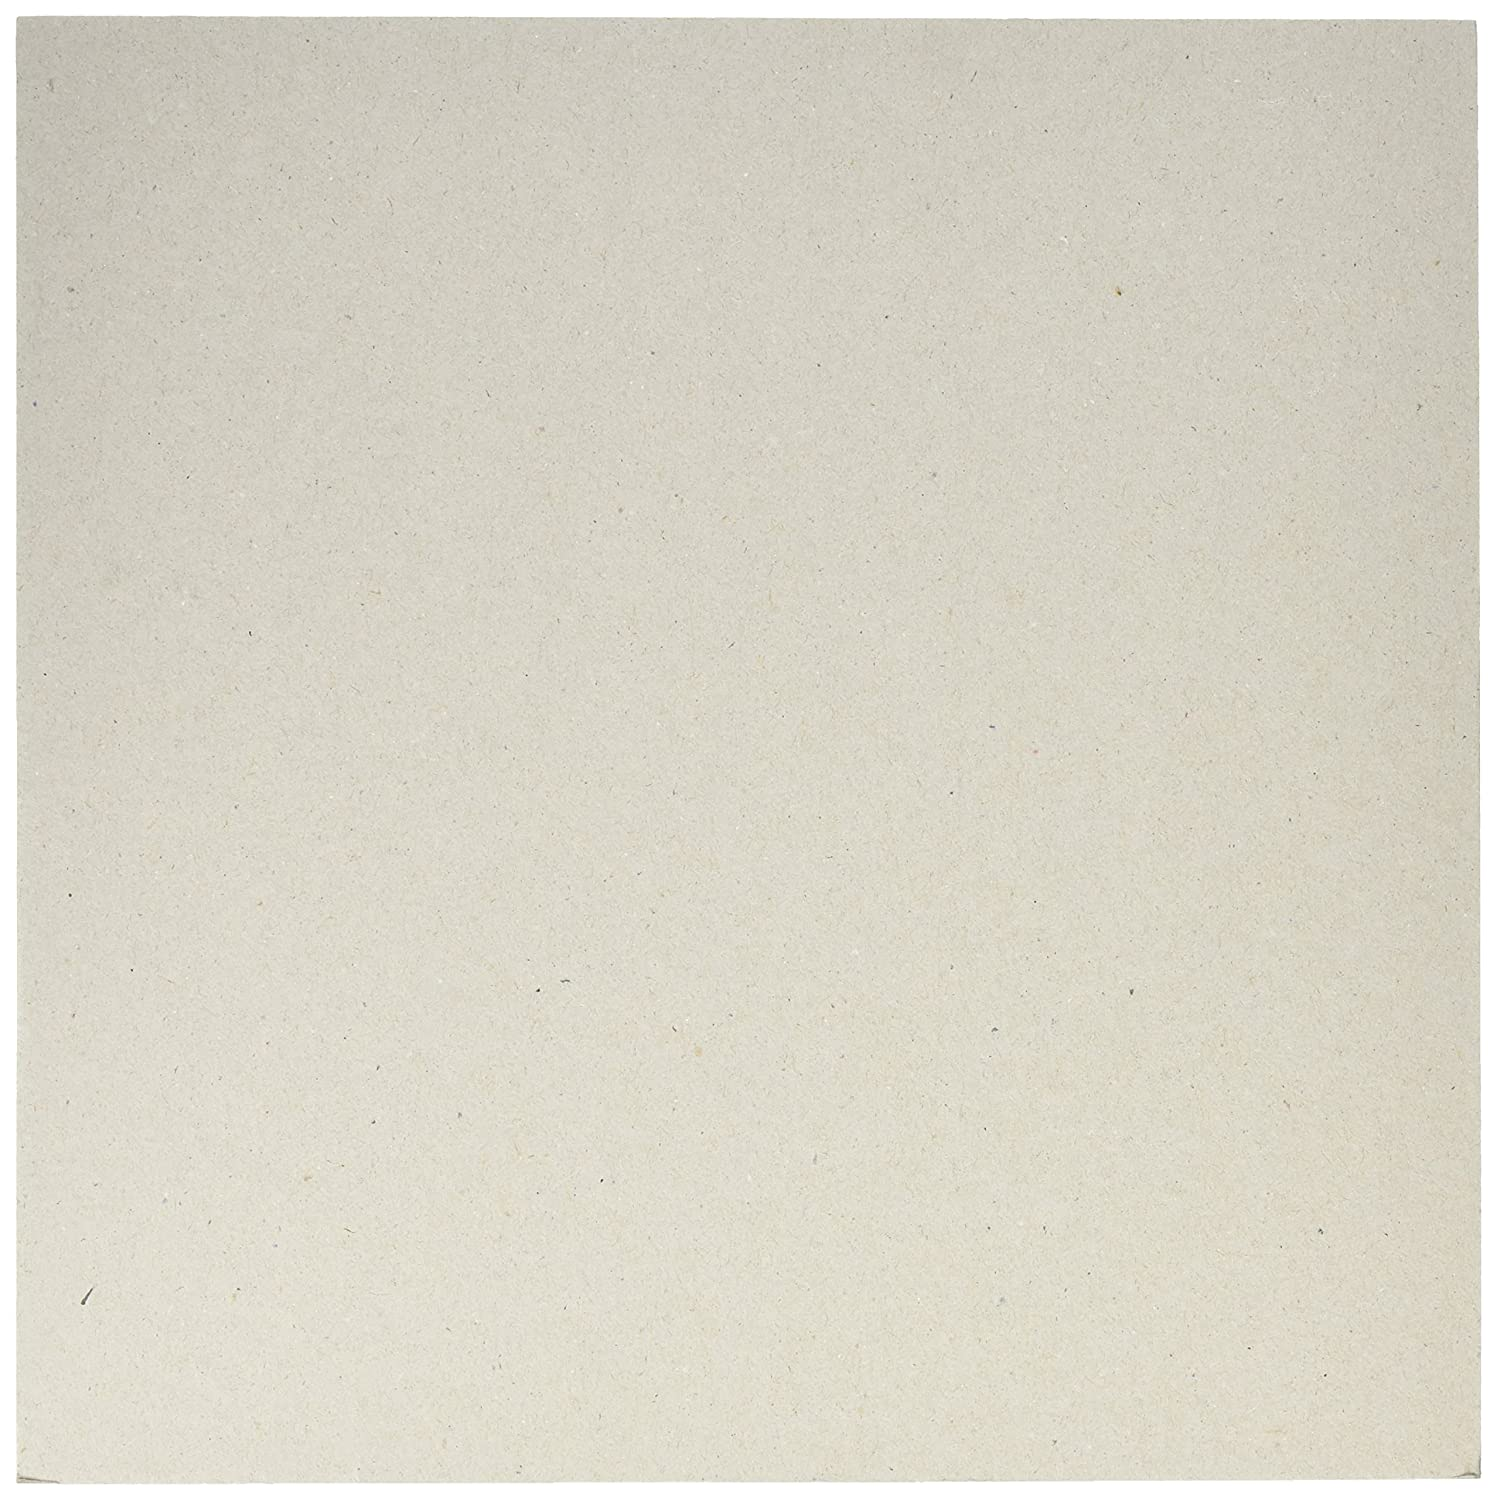 American Crafts 303181 Bazzill Chipboard Sheets, 12 by 12, Beige (Pack of 25) 12 by 12